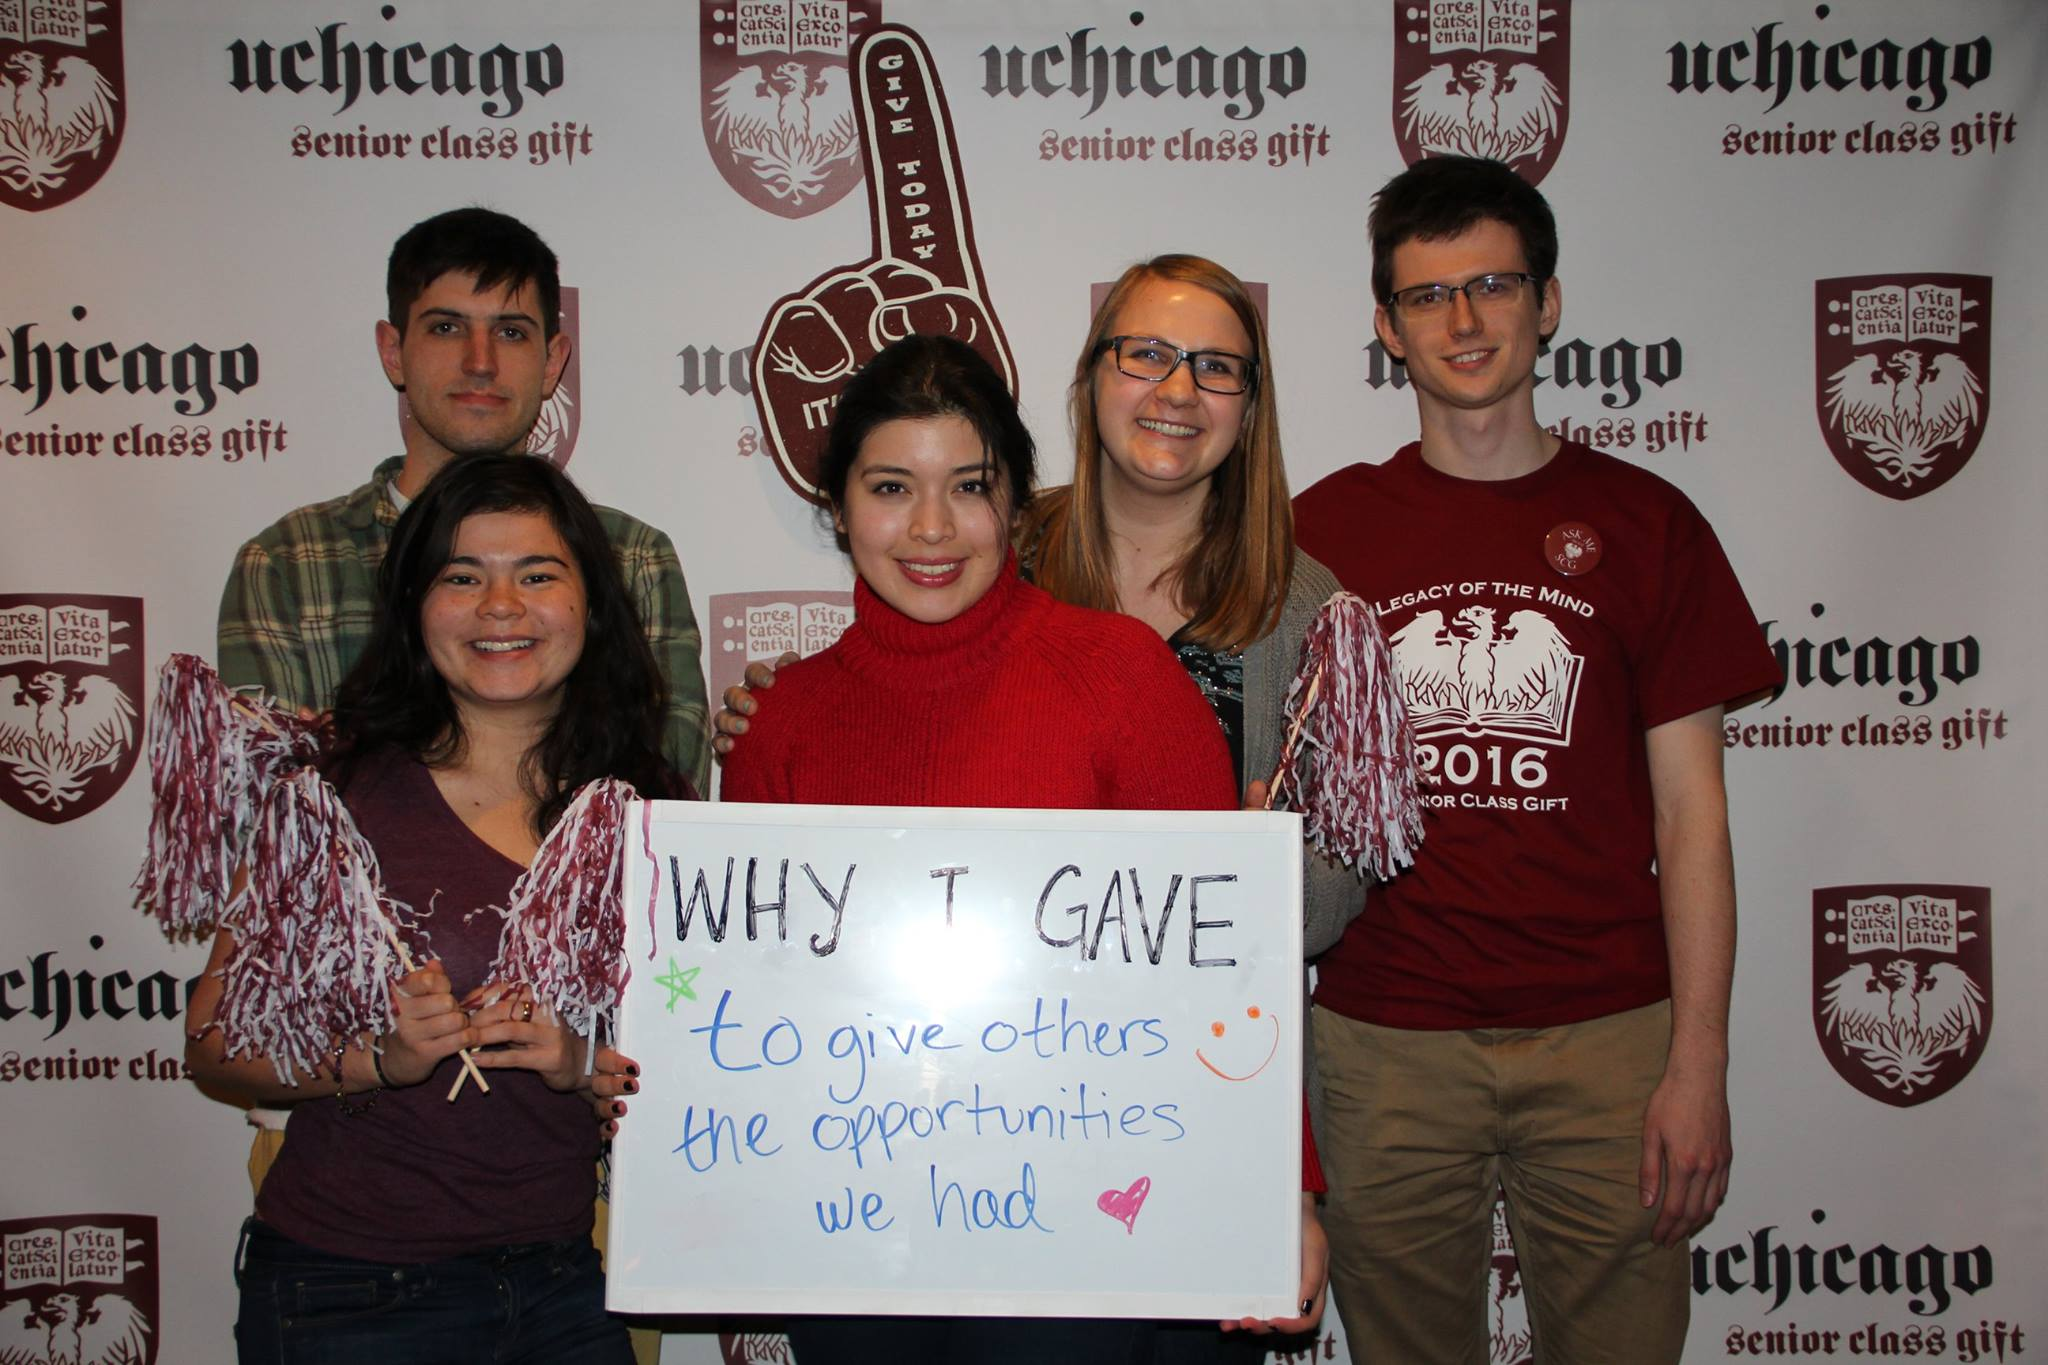 University of Chicago students show why they support student philanthropy